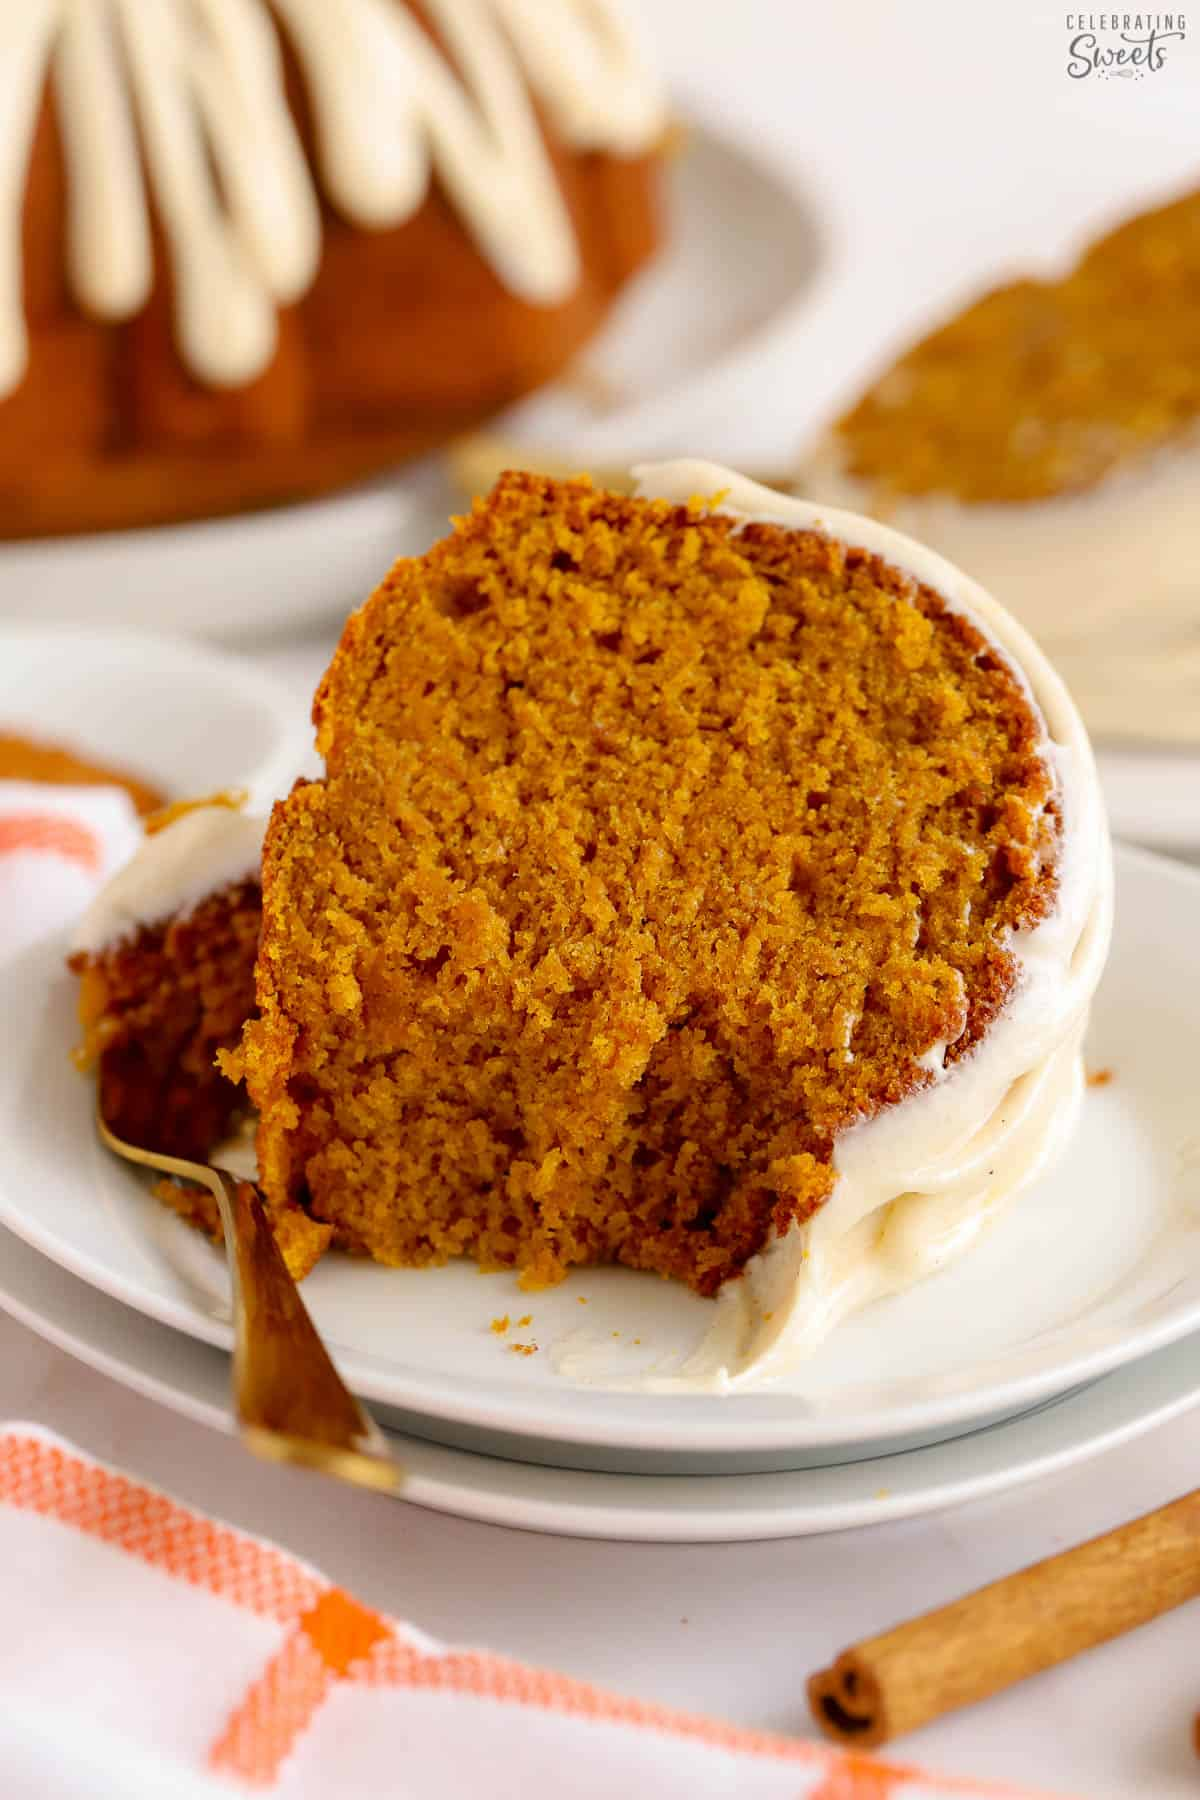 Slice of pumpkin bundt cake on a white plate with a gold fork.